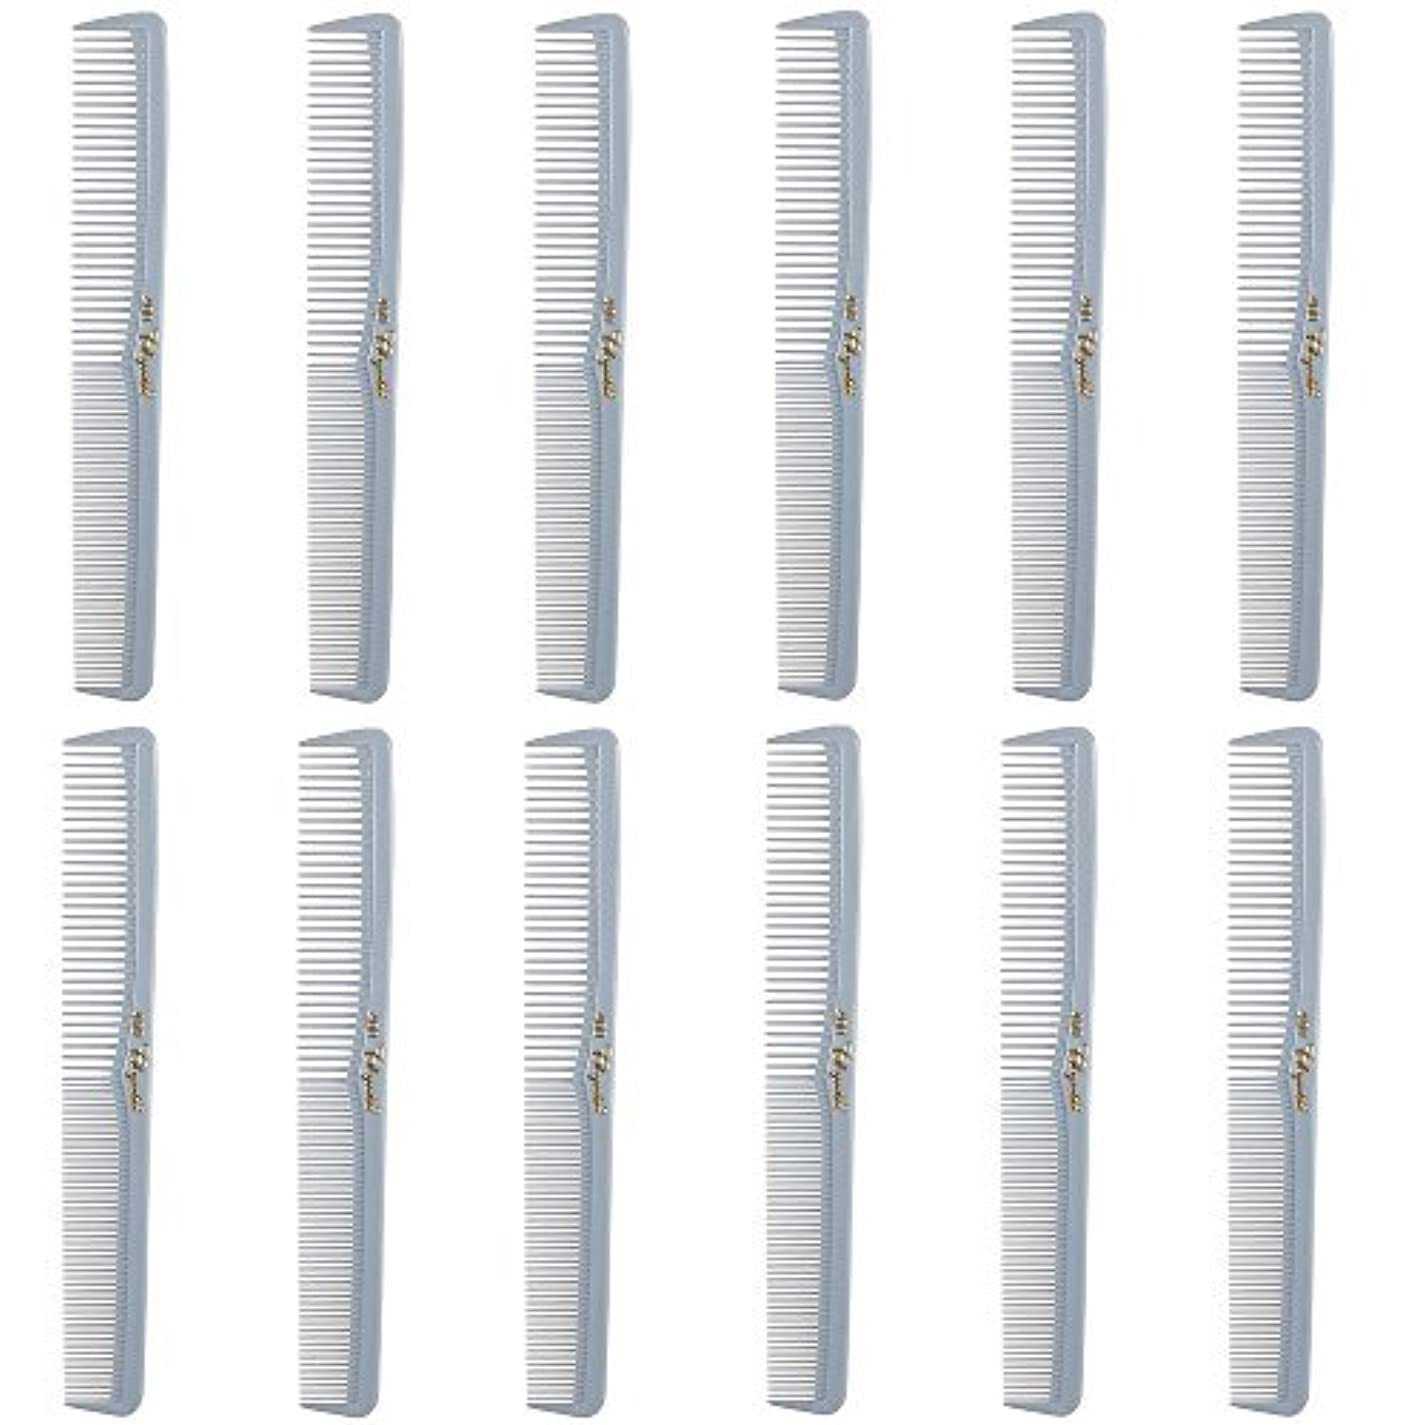 アンタゴニストコンサート求人Barber Beauty Hair Cleopatra 400 All Purpose Comb (12 Pack) 12 x SB-C400-LGREY [並行輸入品]